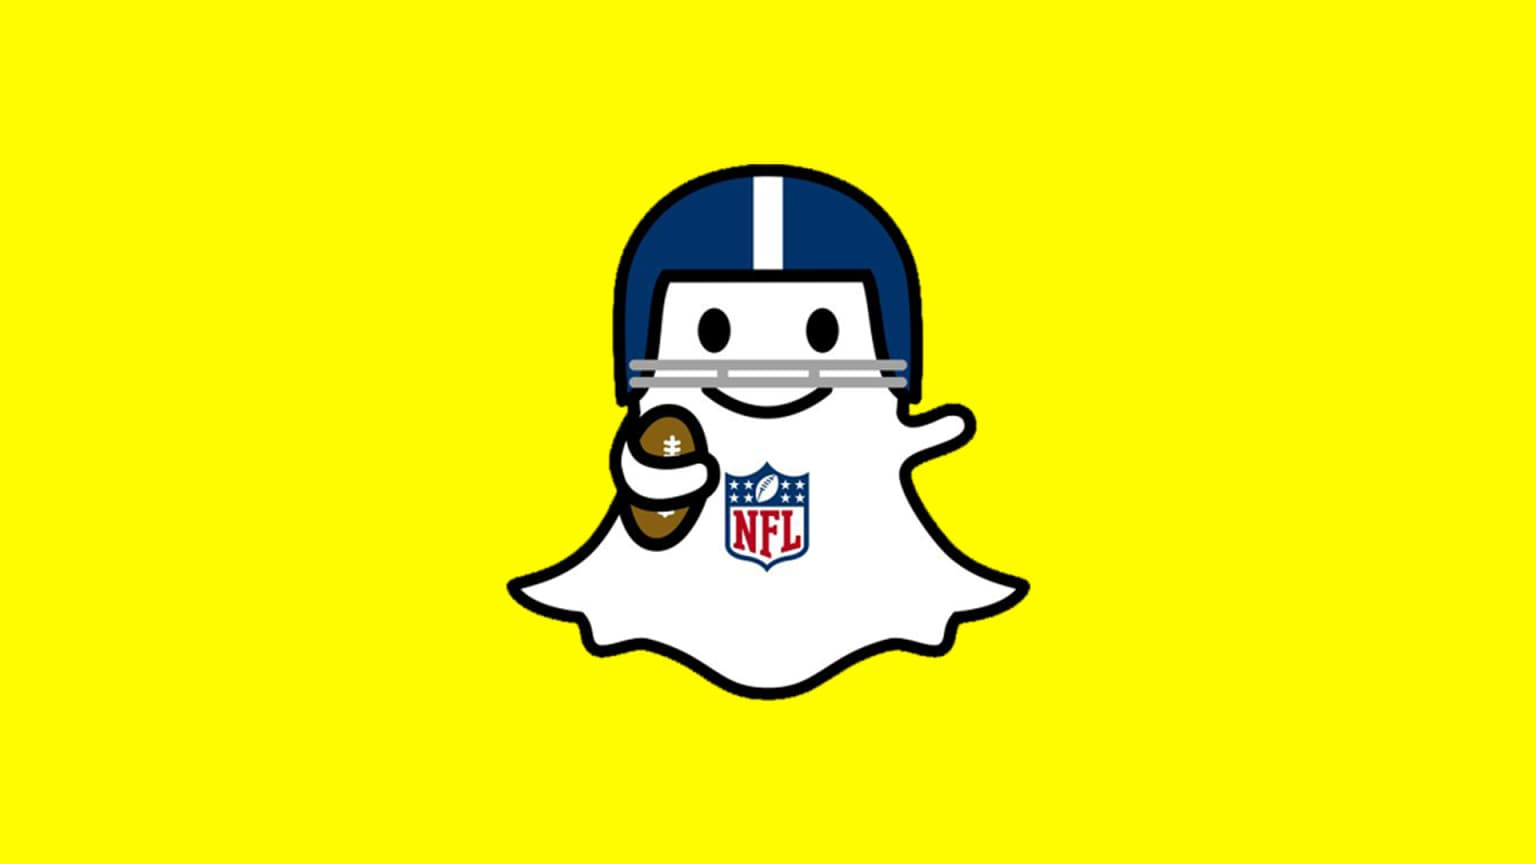 NFL Snapchat Discover Channel